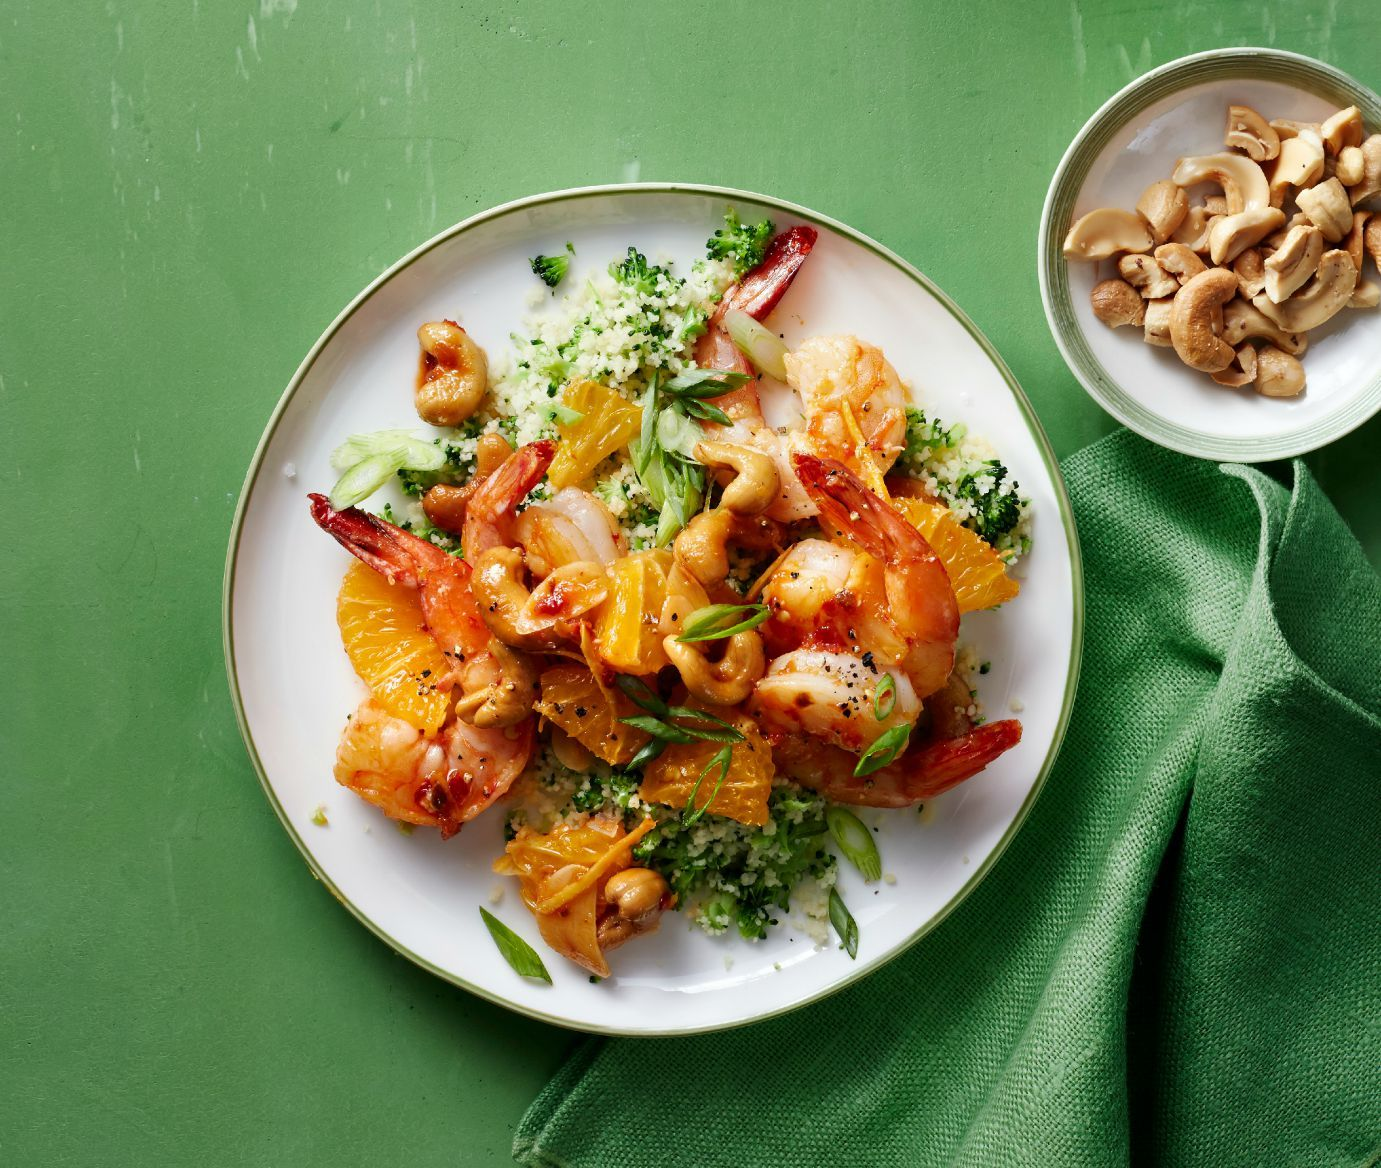 Chili-Orange Shrimp with Broccoli Couscous